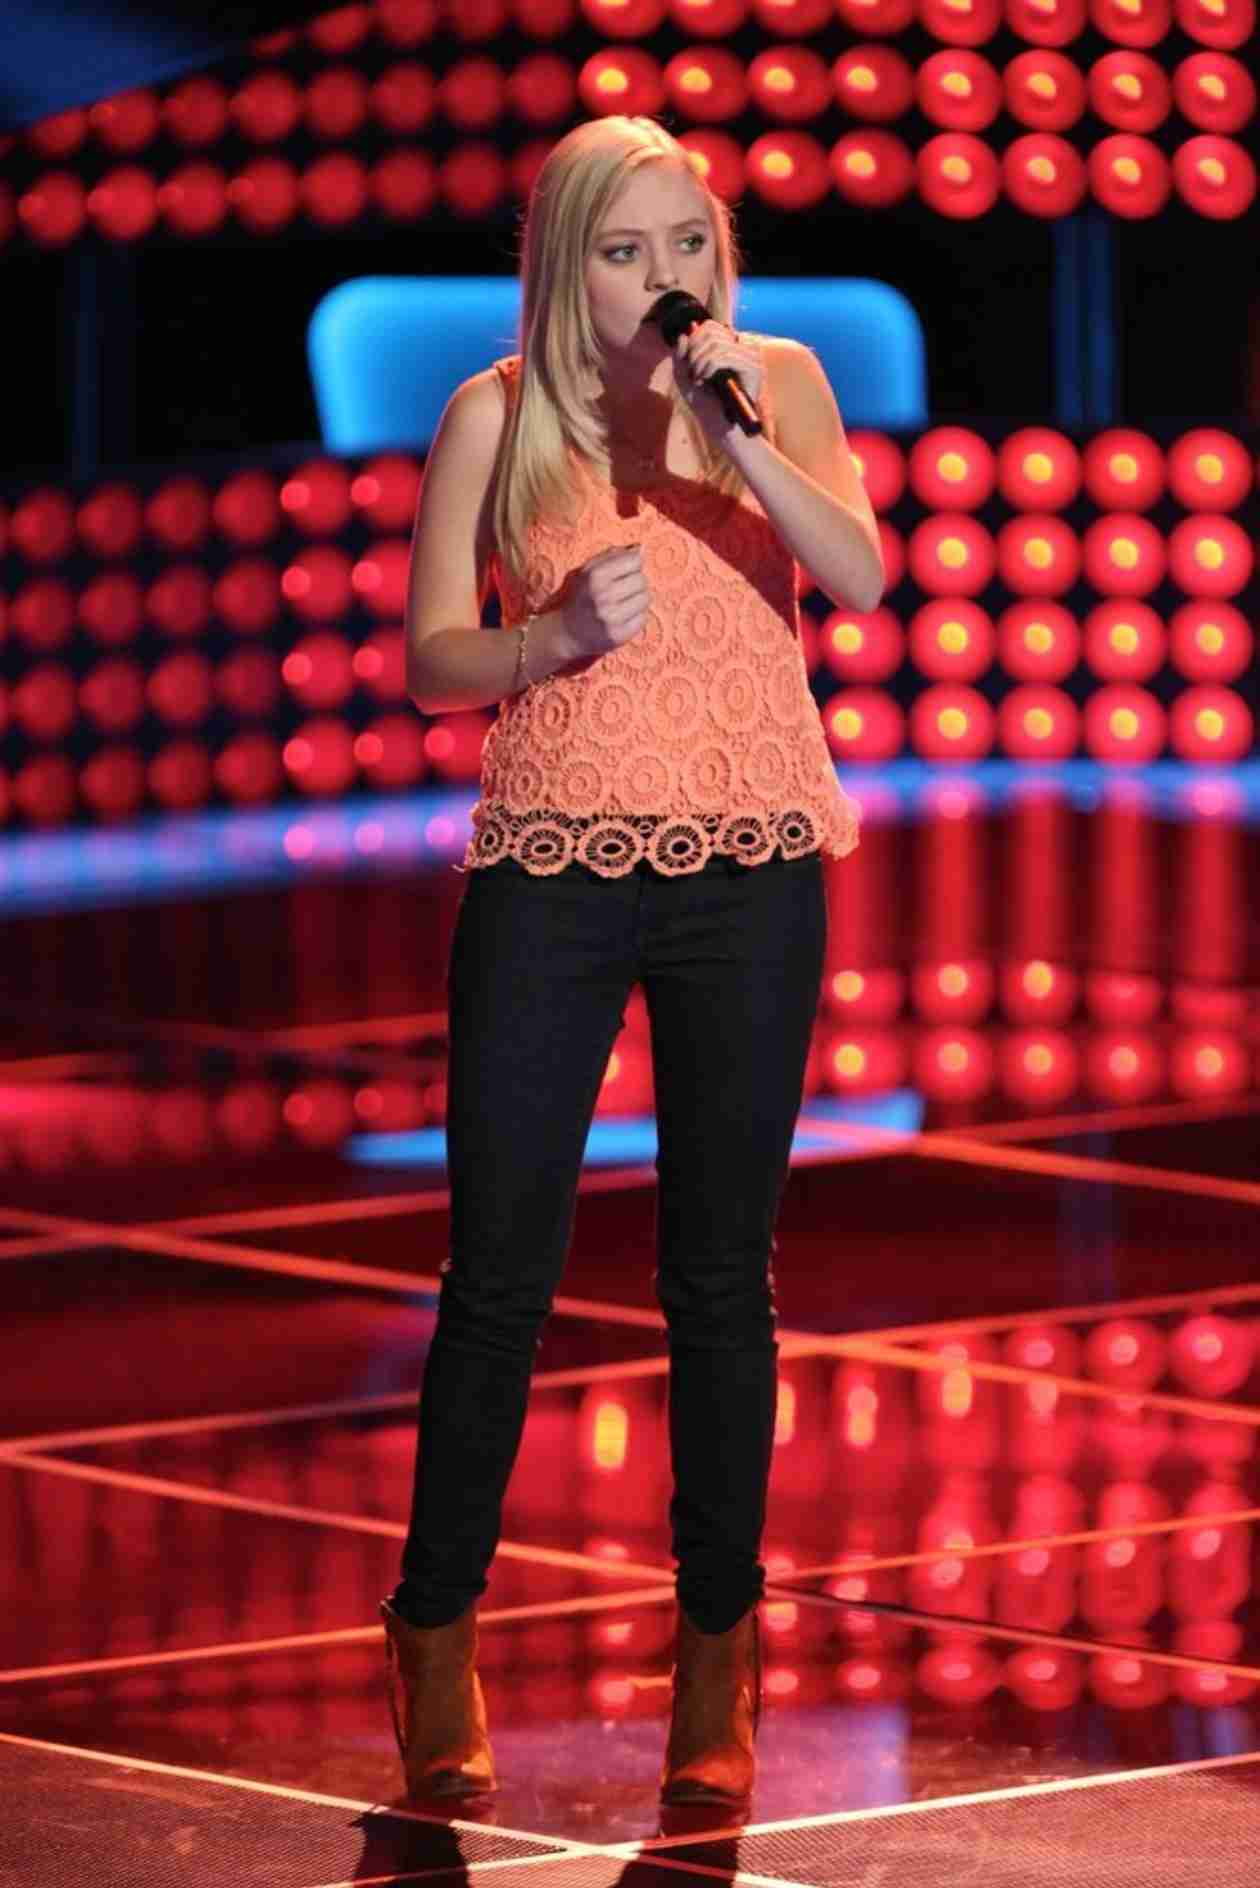 Watch Madilyn Paige Sing on The Voice 2014 Season 6 Blind Auditions February 25, 2014 (VIDEO)